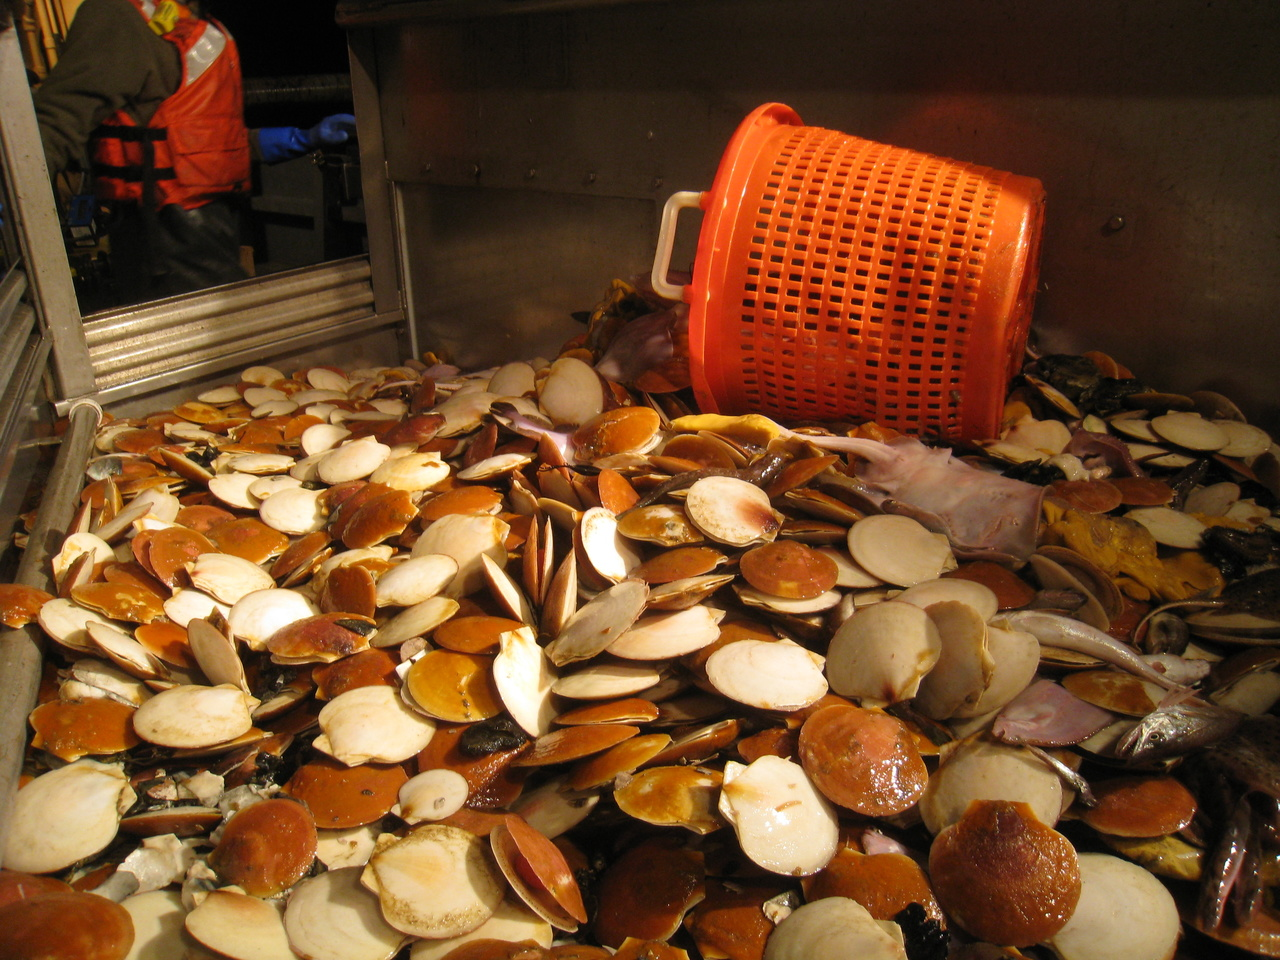 NOAA Adds MRAG Americas as Provider to Sea Scallop Observer Program